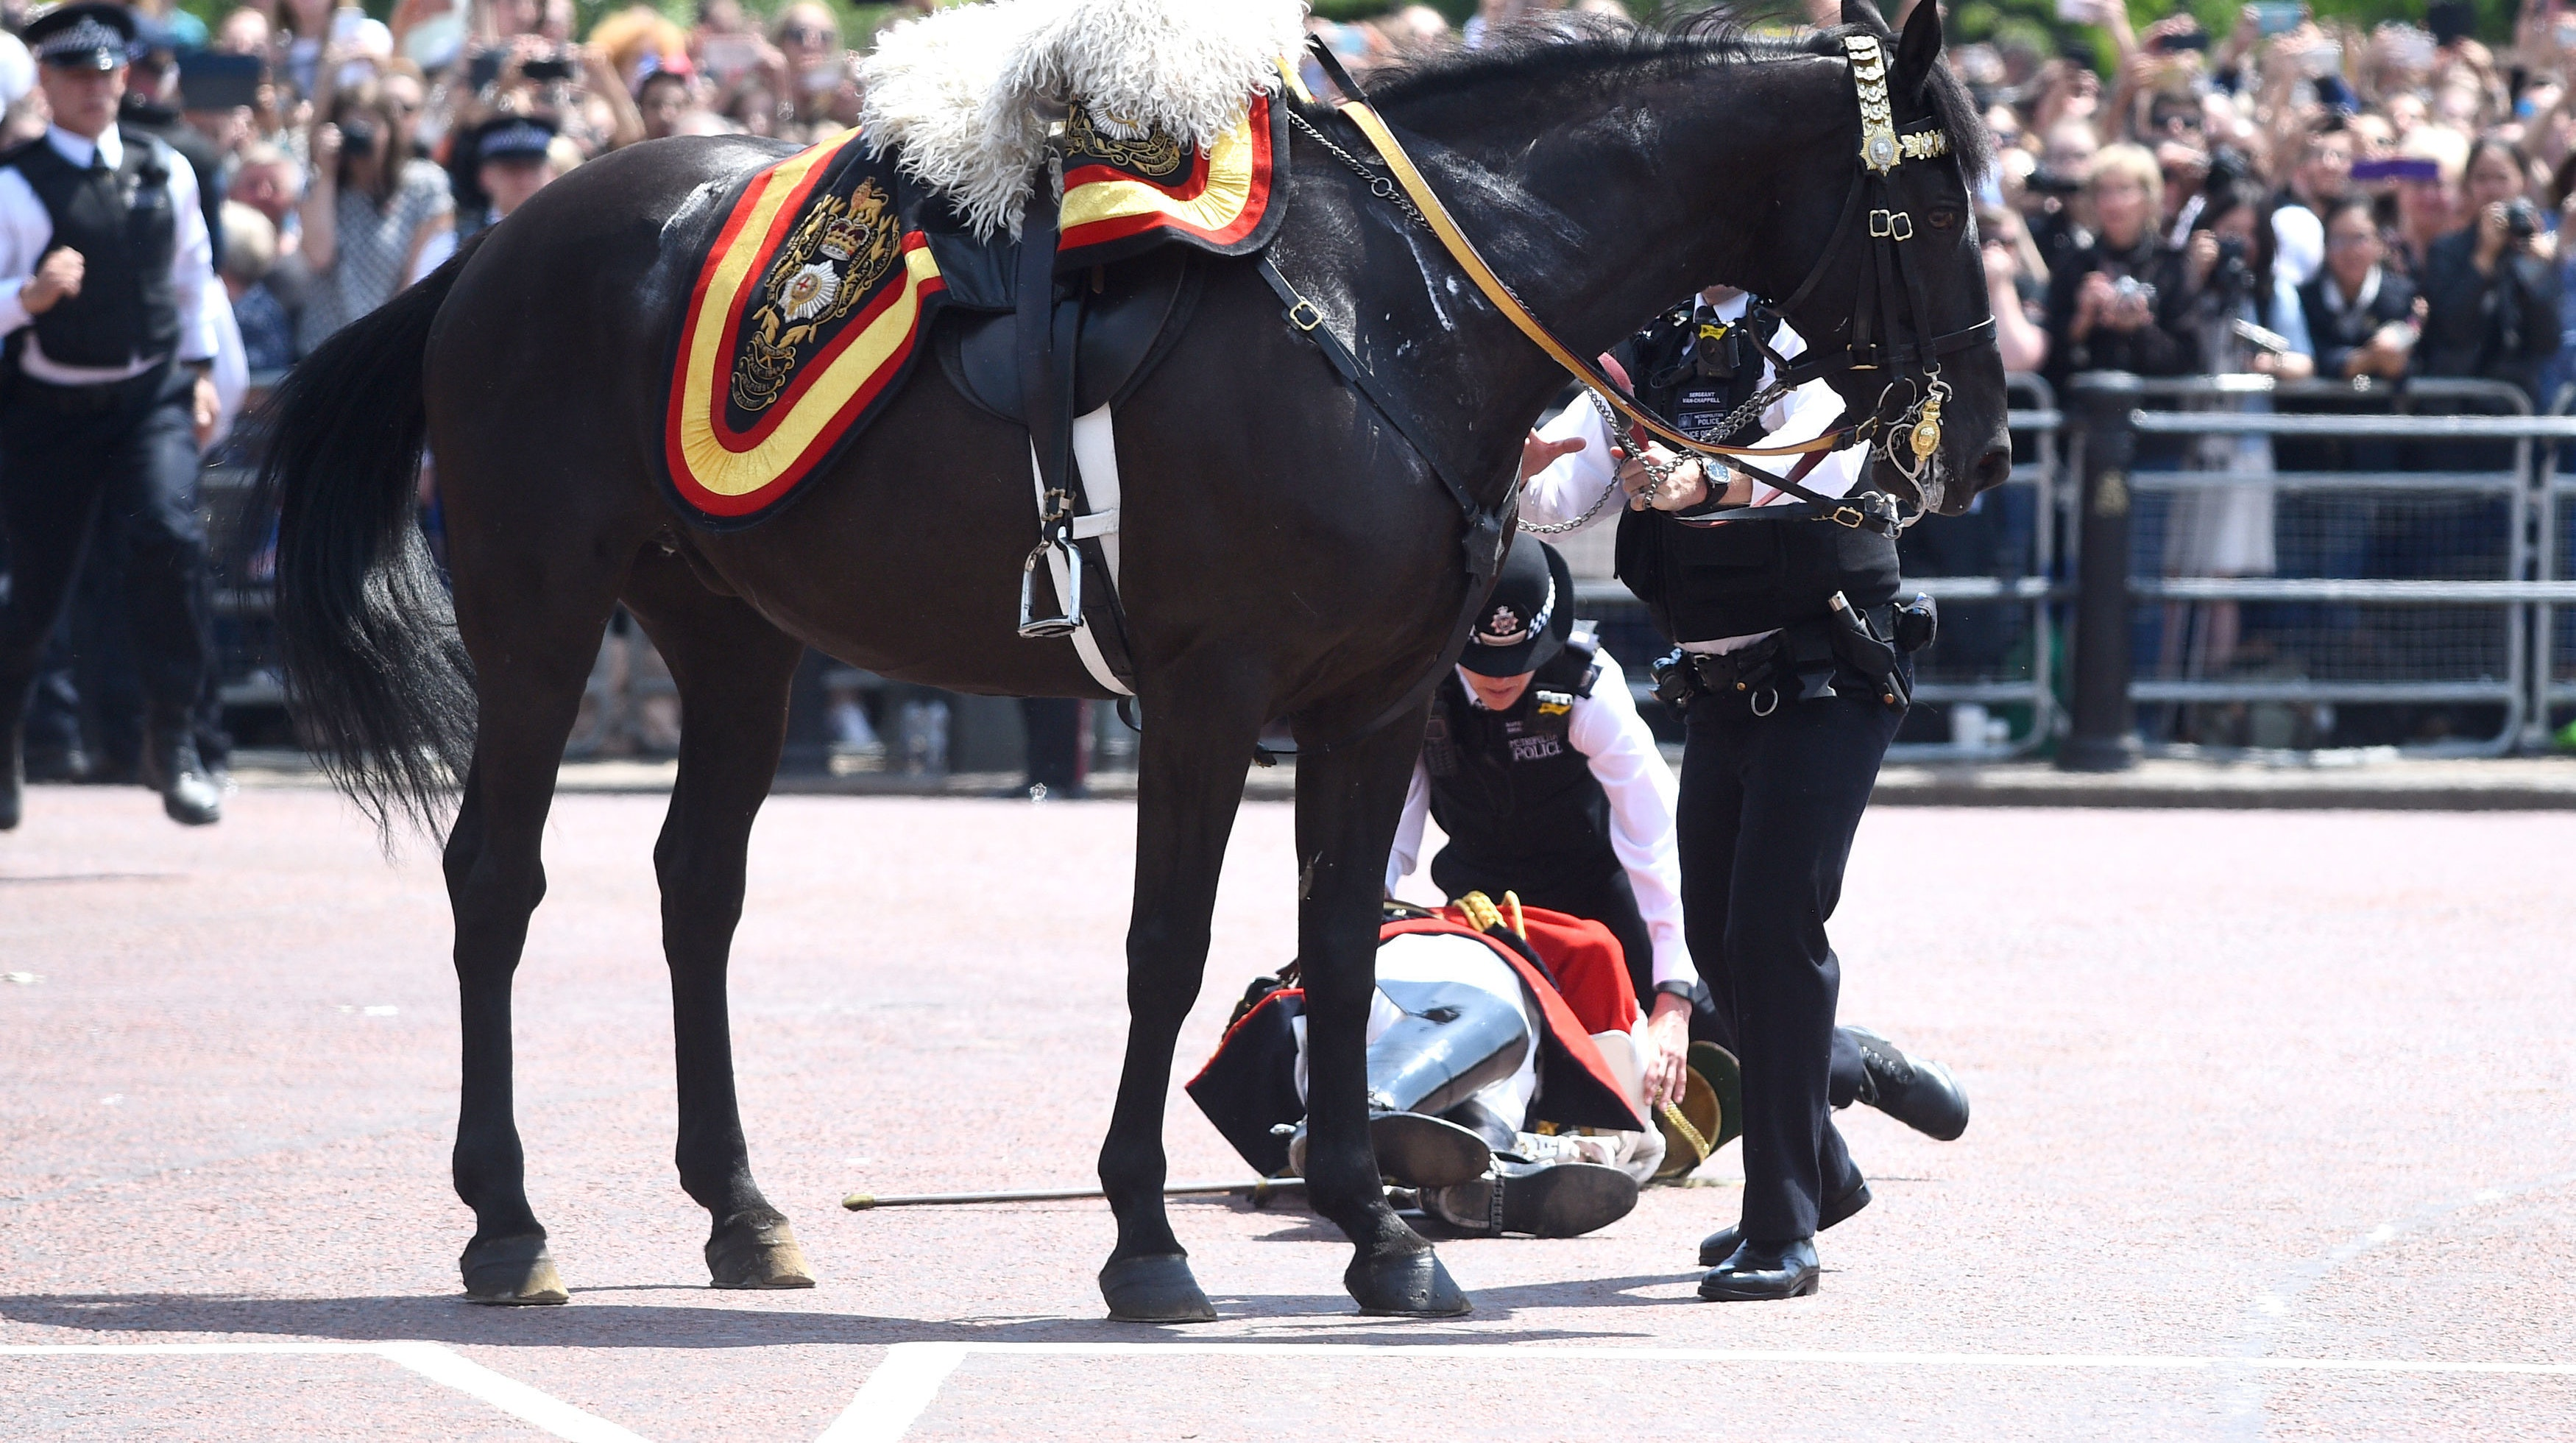 Former Forces Chief Lord Guthrie Falls Off Horse After